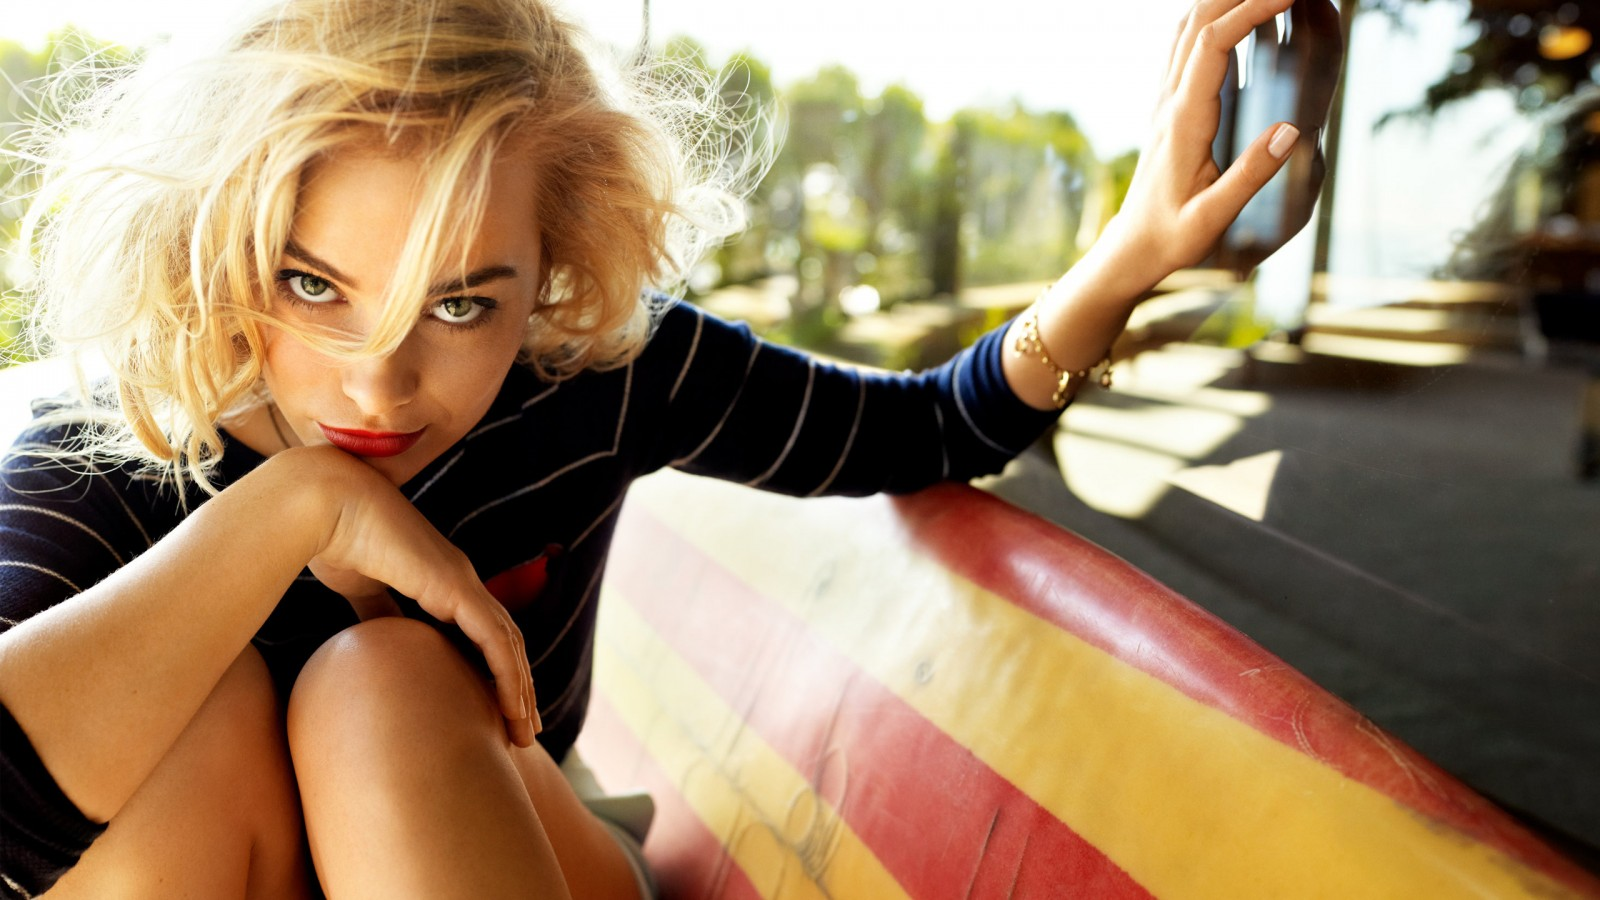 Cars 2 Wallpaper For Windows 7 Margot Robbie 5 Wallpapers Hd Wallpapers Id 20179